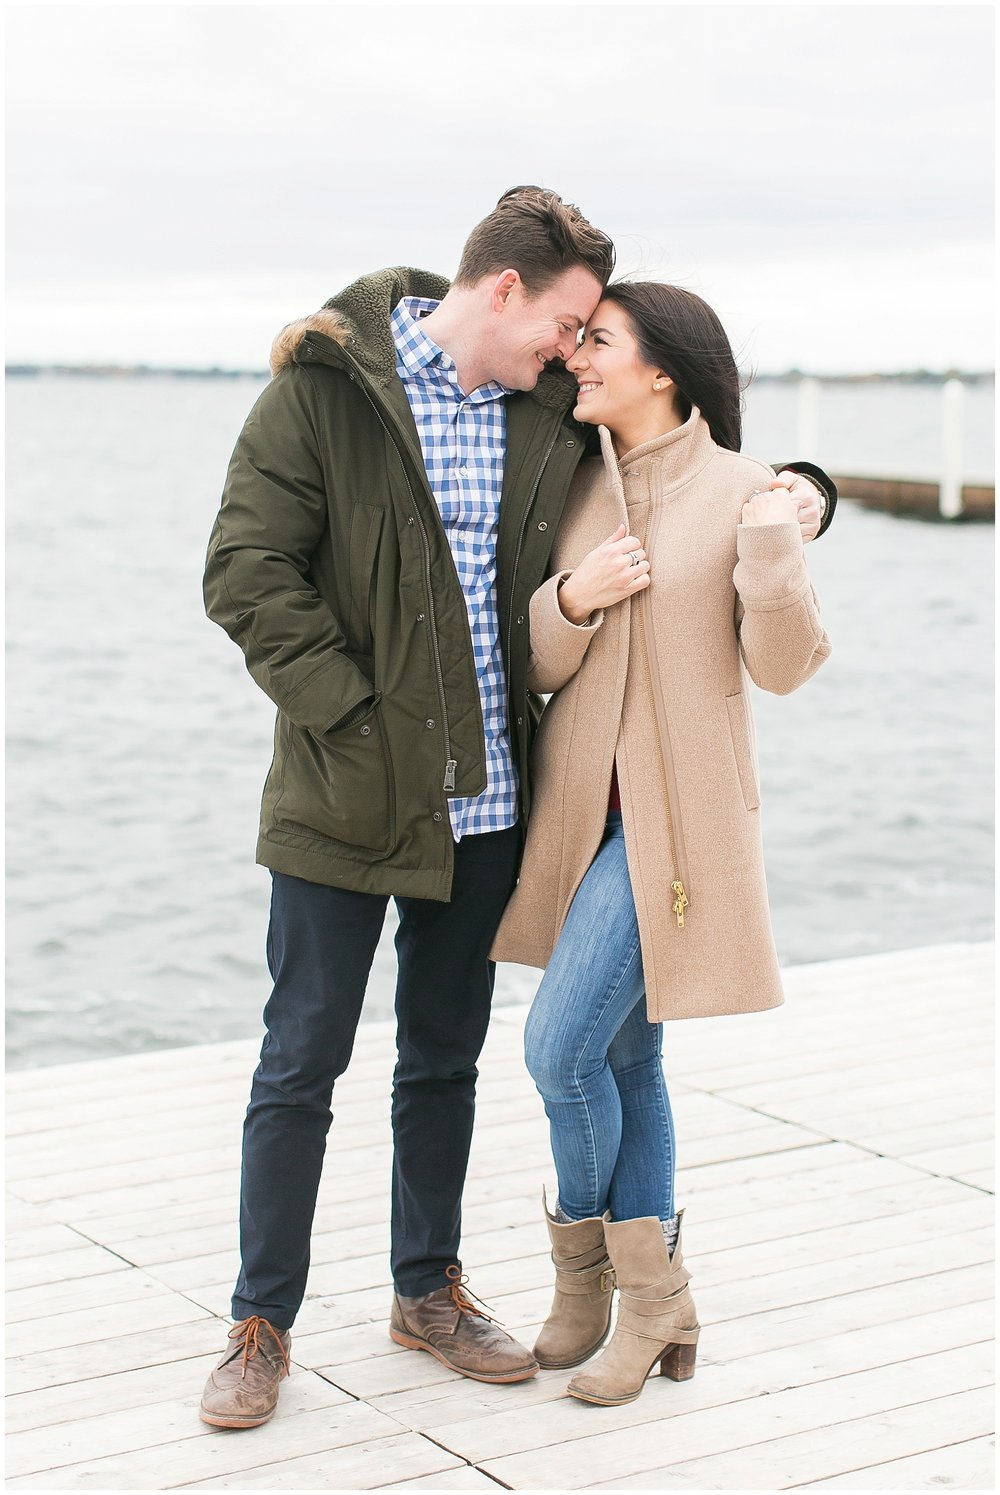 Autumn_engagement_session_memorial_union_Madison_wisconsin_0783.jpg